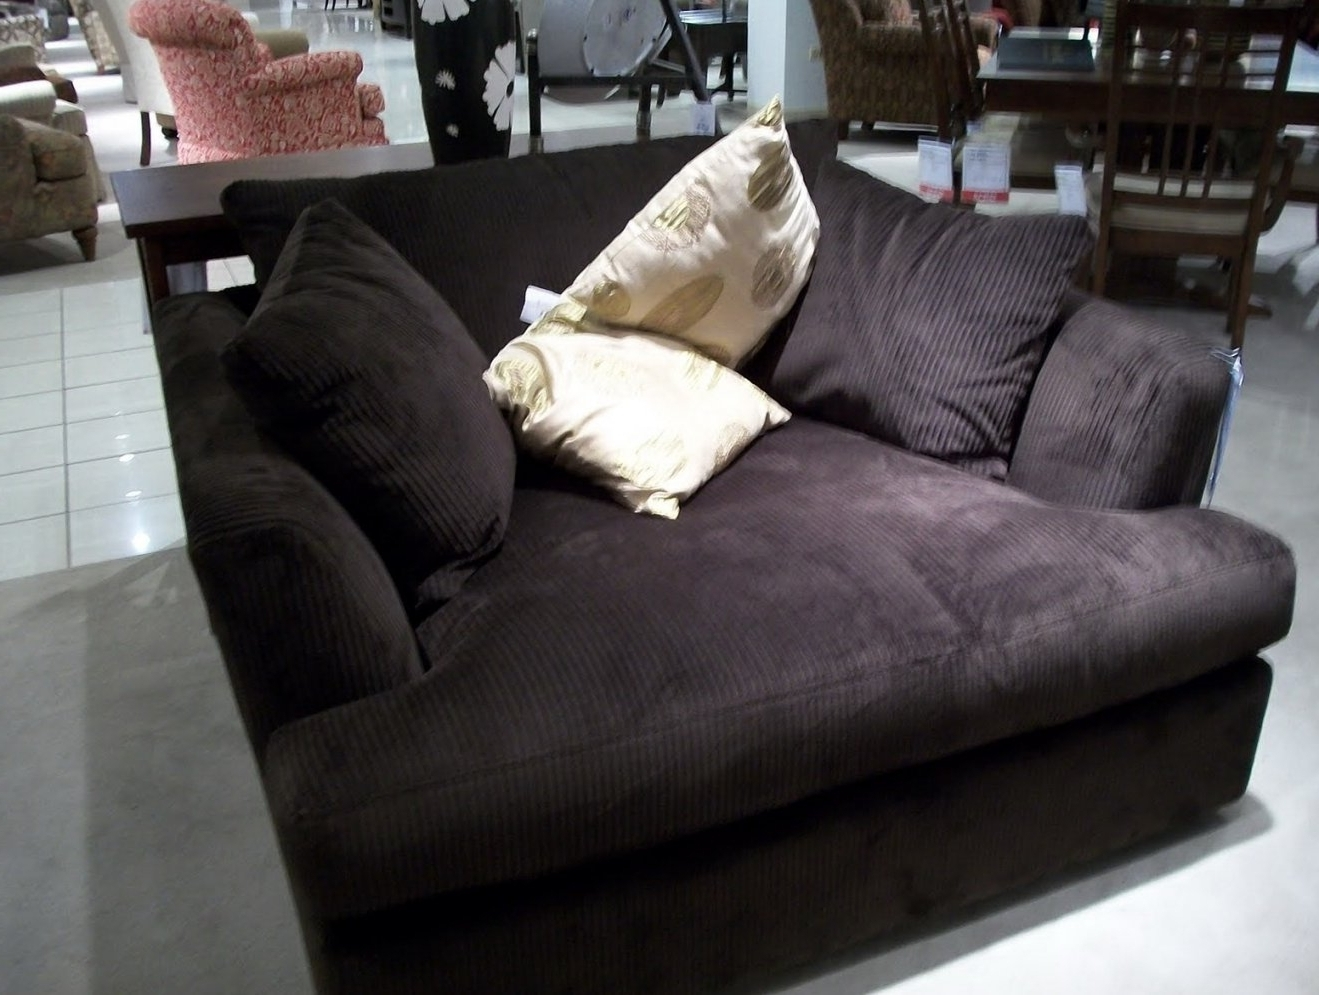 Oversized Chaise Lounge Sofa with regard to Current Oversized Chaise Lounge Sofas